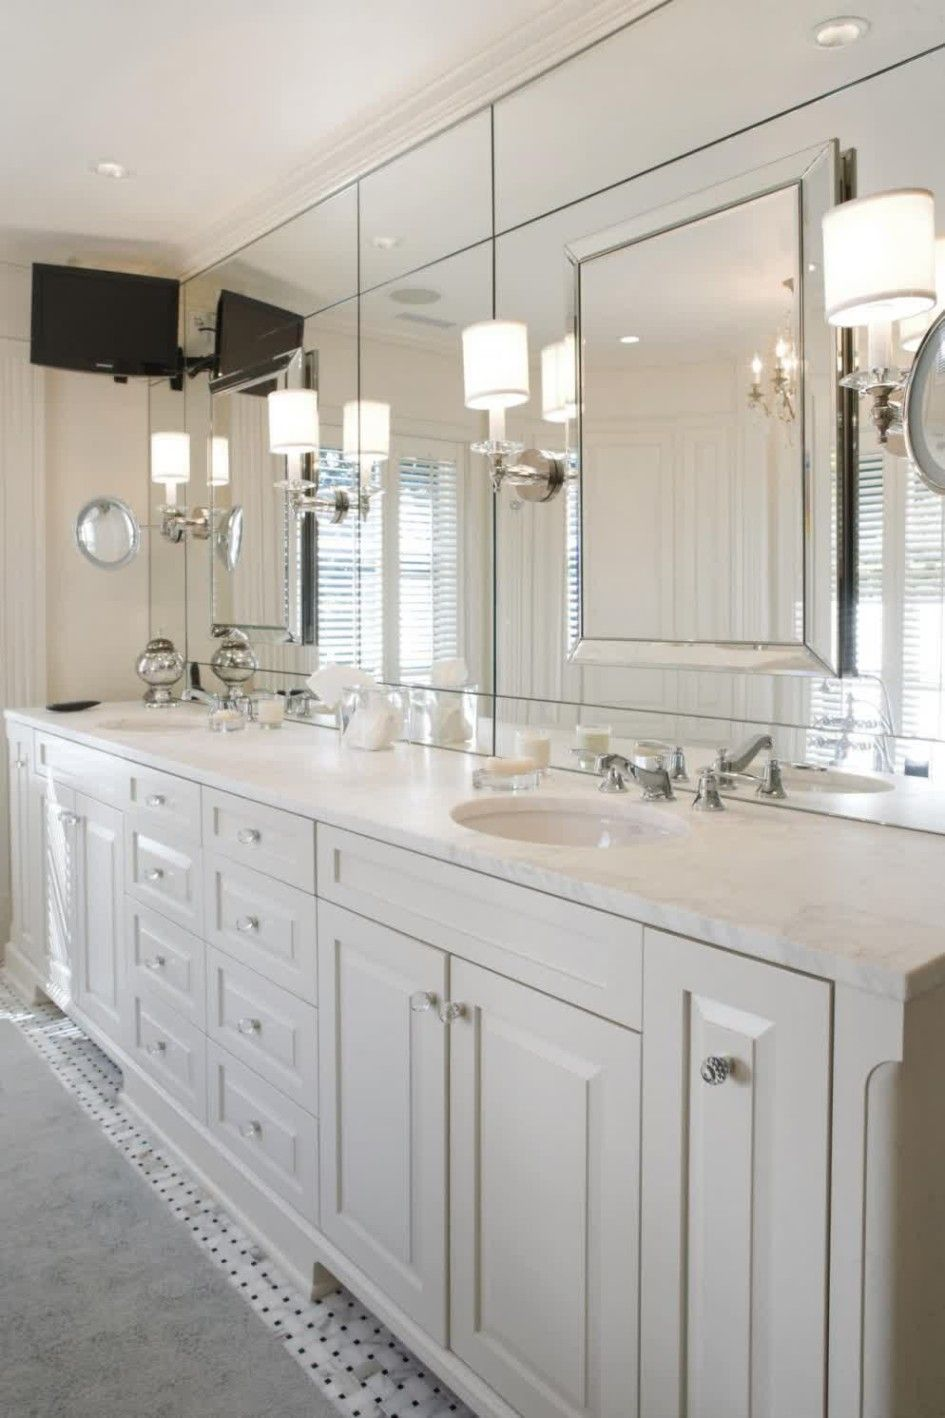 Bathroom Ideas Modern Wall Sconces With Large Frameless Mirror Above Double Sink Vanity Under Recessed Lights Selecting Sweet